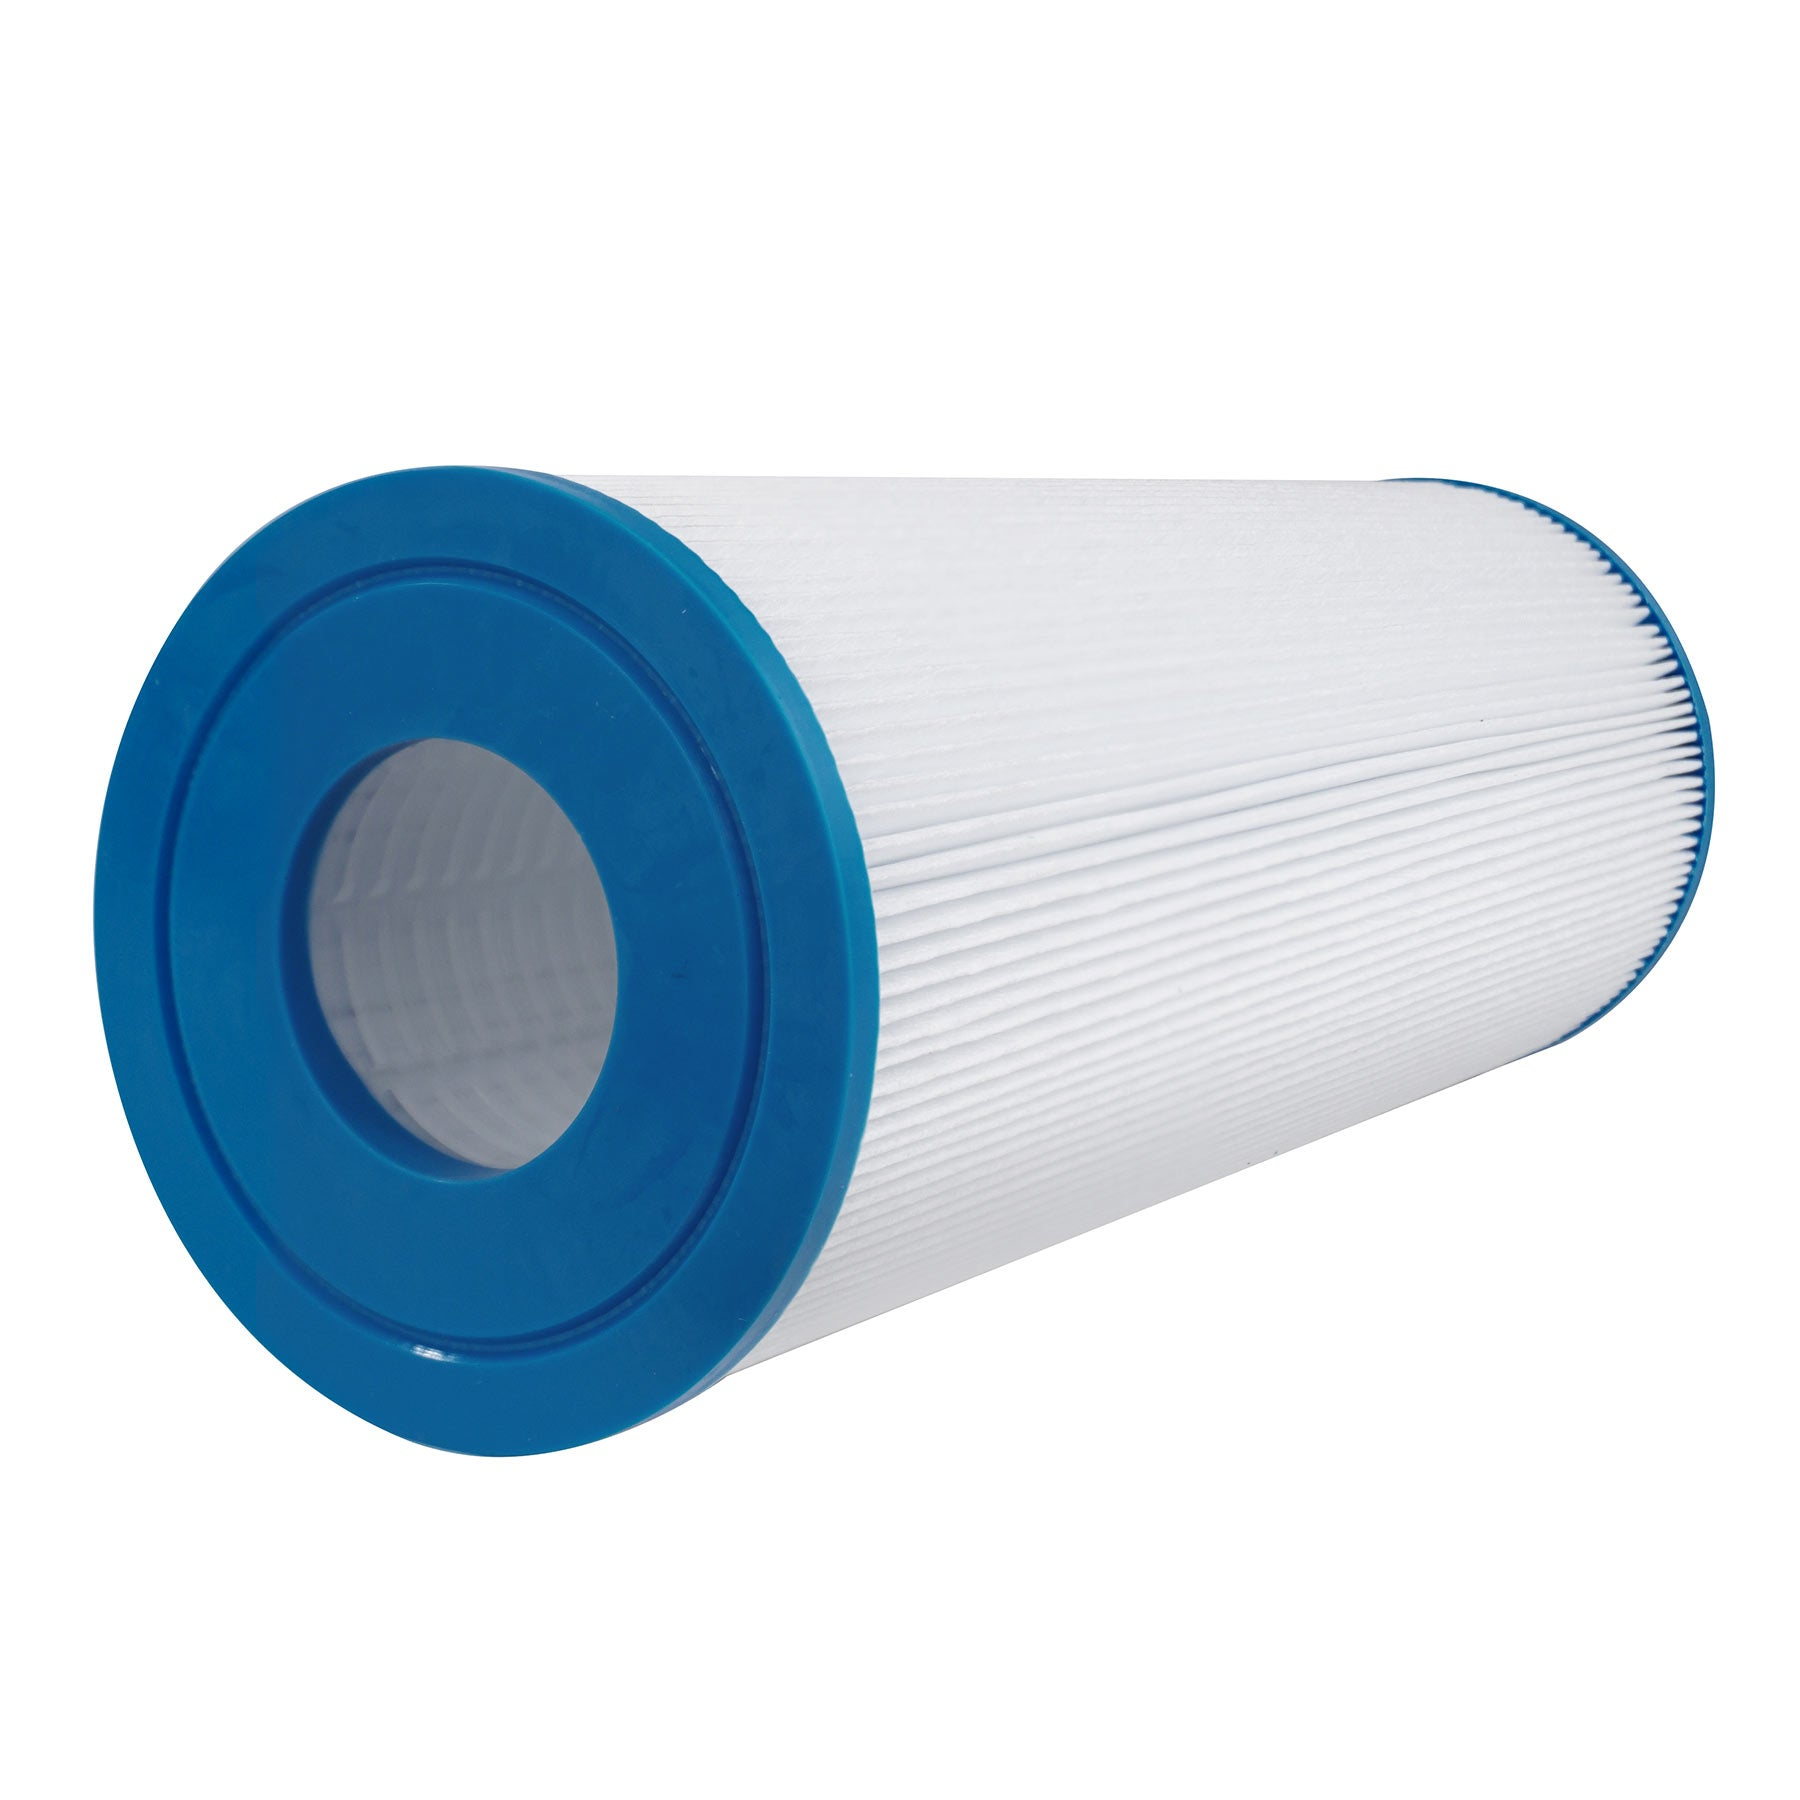 Replaces Unicel C-4325, Pleatco PA225 • Pool & Spa Filter Cartridge-Filter Cartridge-FilterDeal.com